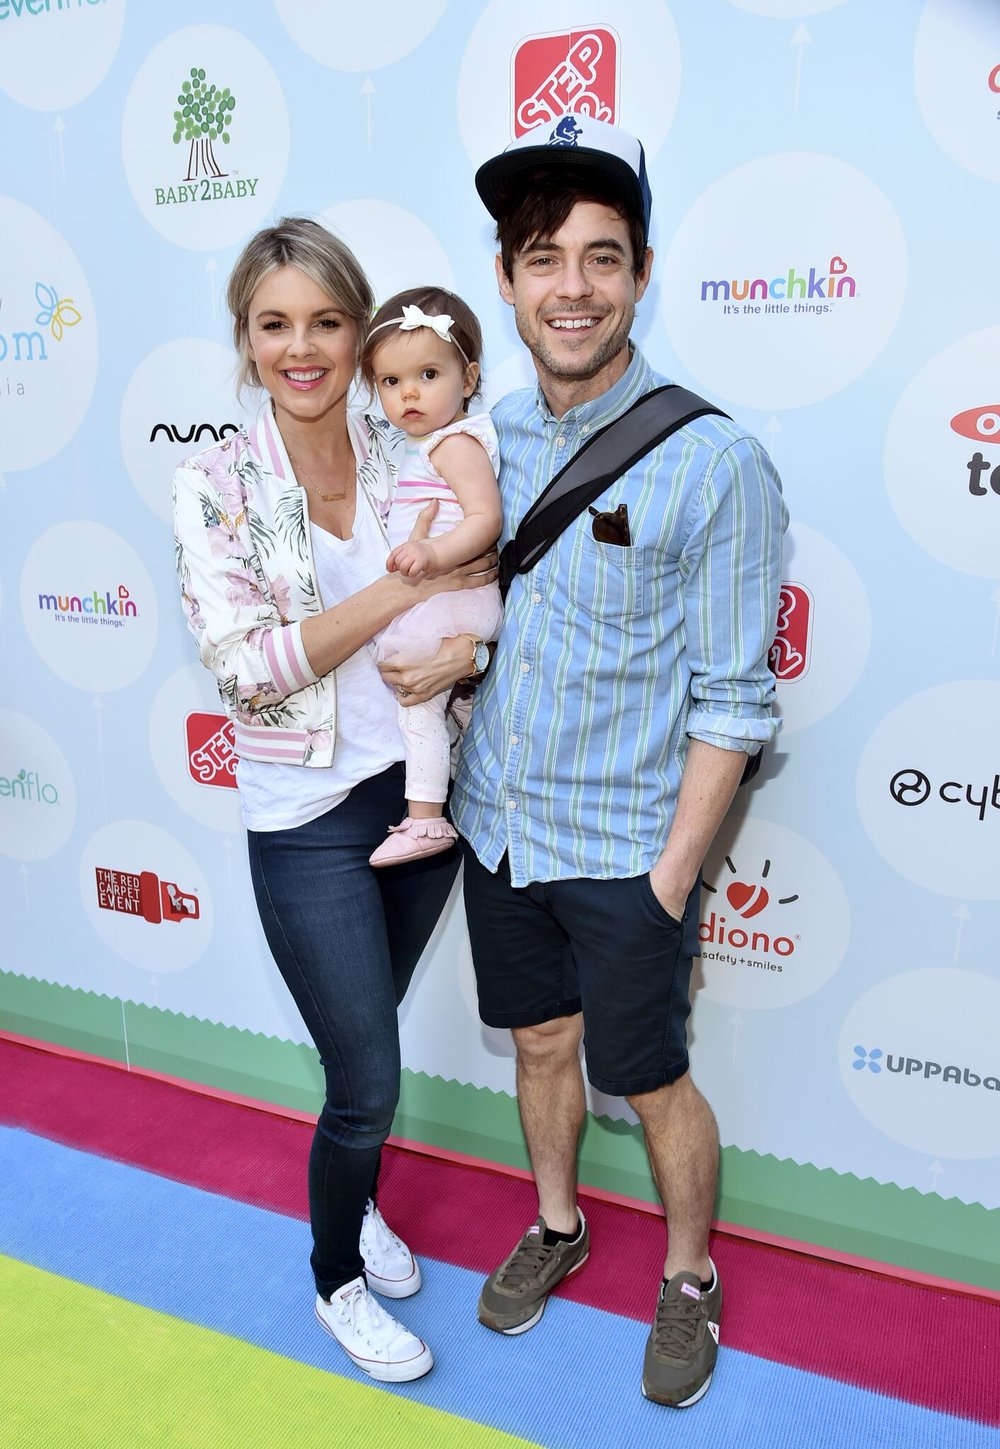 Ali Fedotowsky Brought Her Family and Adorable Daughter to the Event! Photo Credit: Stefanie Keenan